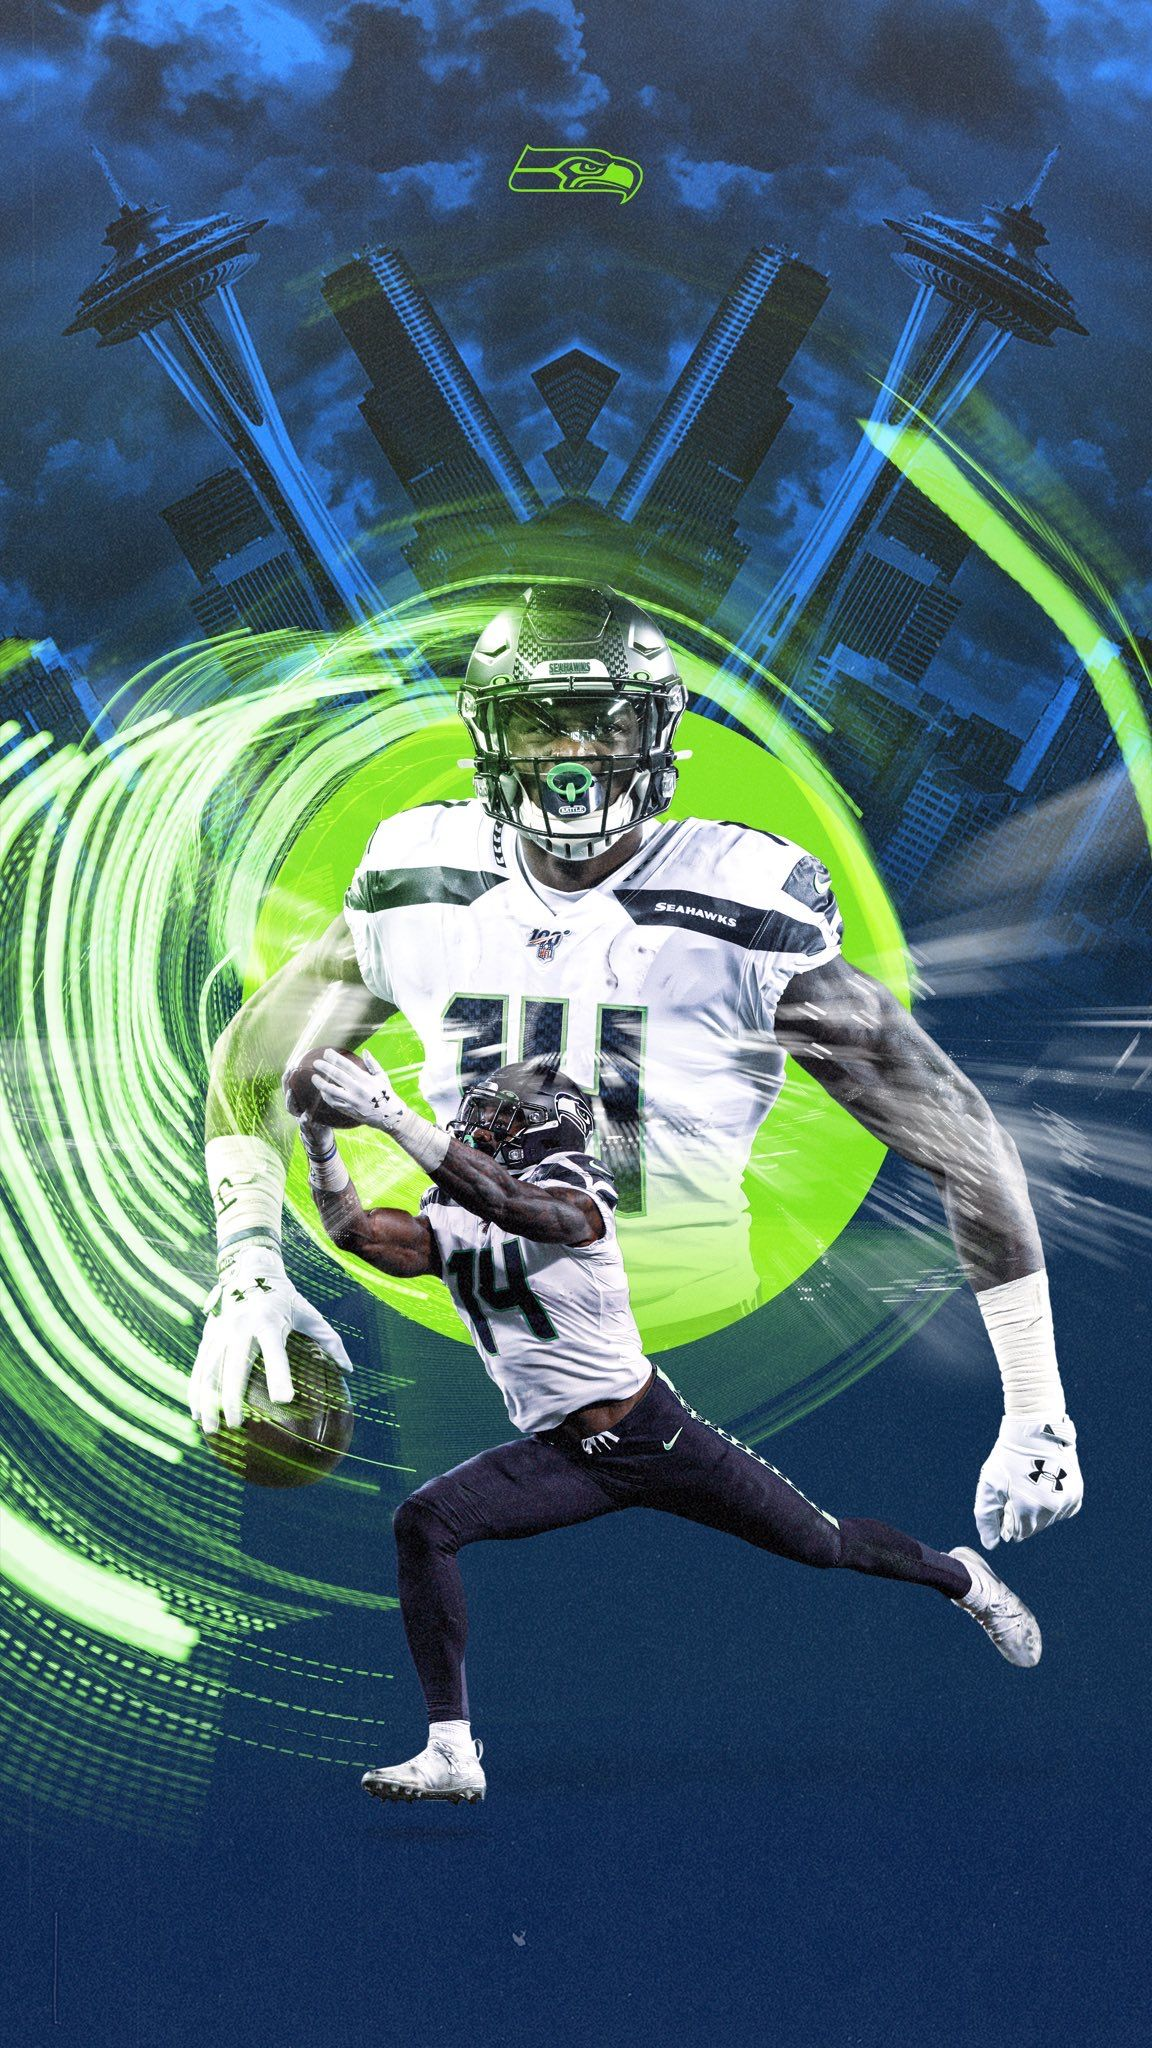 Pin By Cathy Leistikow On Seattle Seahawks In 2020 Nfl Football Wallpaper Nfl Football Pictures Seahawks